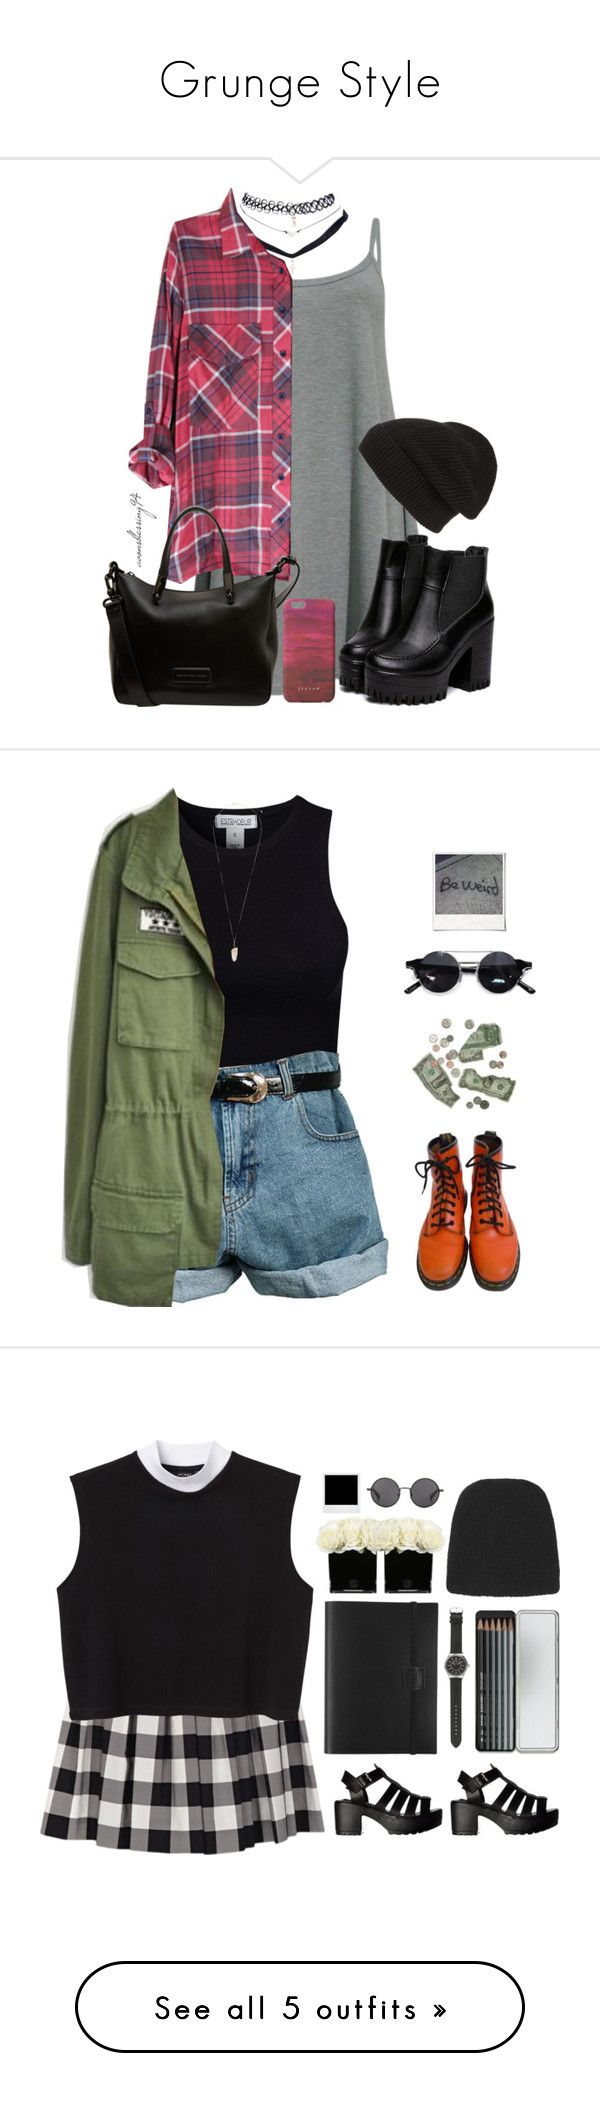 """Grunge Style"" by pixie-inspired ? liked on Polyvore featuring Wet Seal, Phase 3, Marc by Marc Jacobs, Jigsaw, Estradeur, House of Holland, Retrò, Dr. Martens, Eloquii and xO Design (Fall Top Casual)"